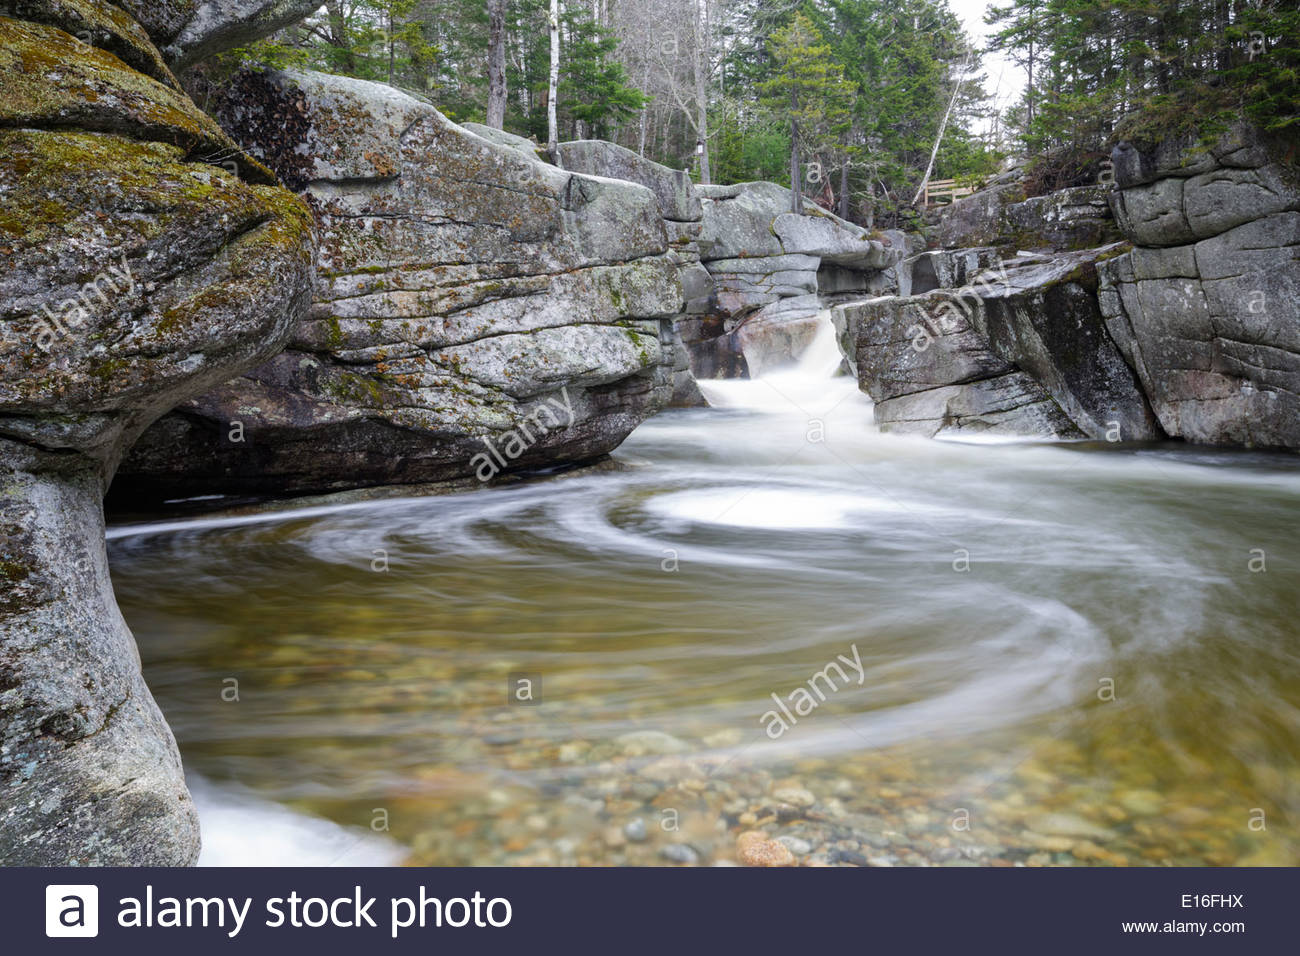 Ammonoosuc River clipart #13, Download drawings